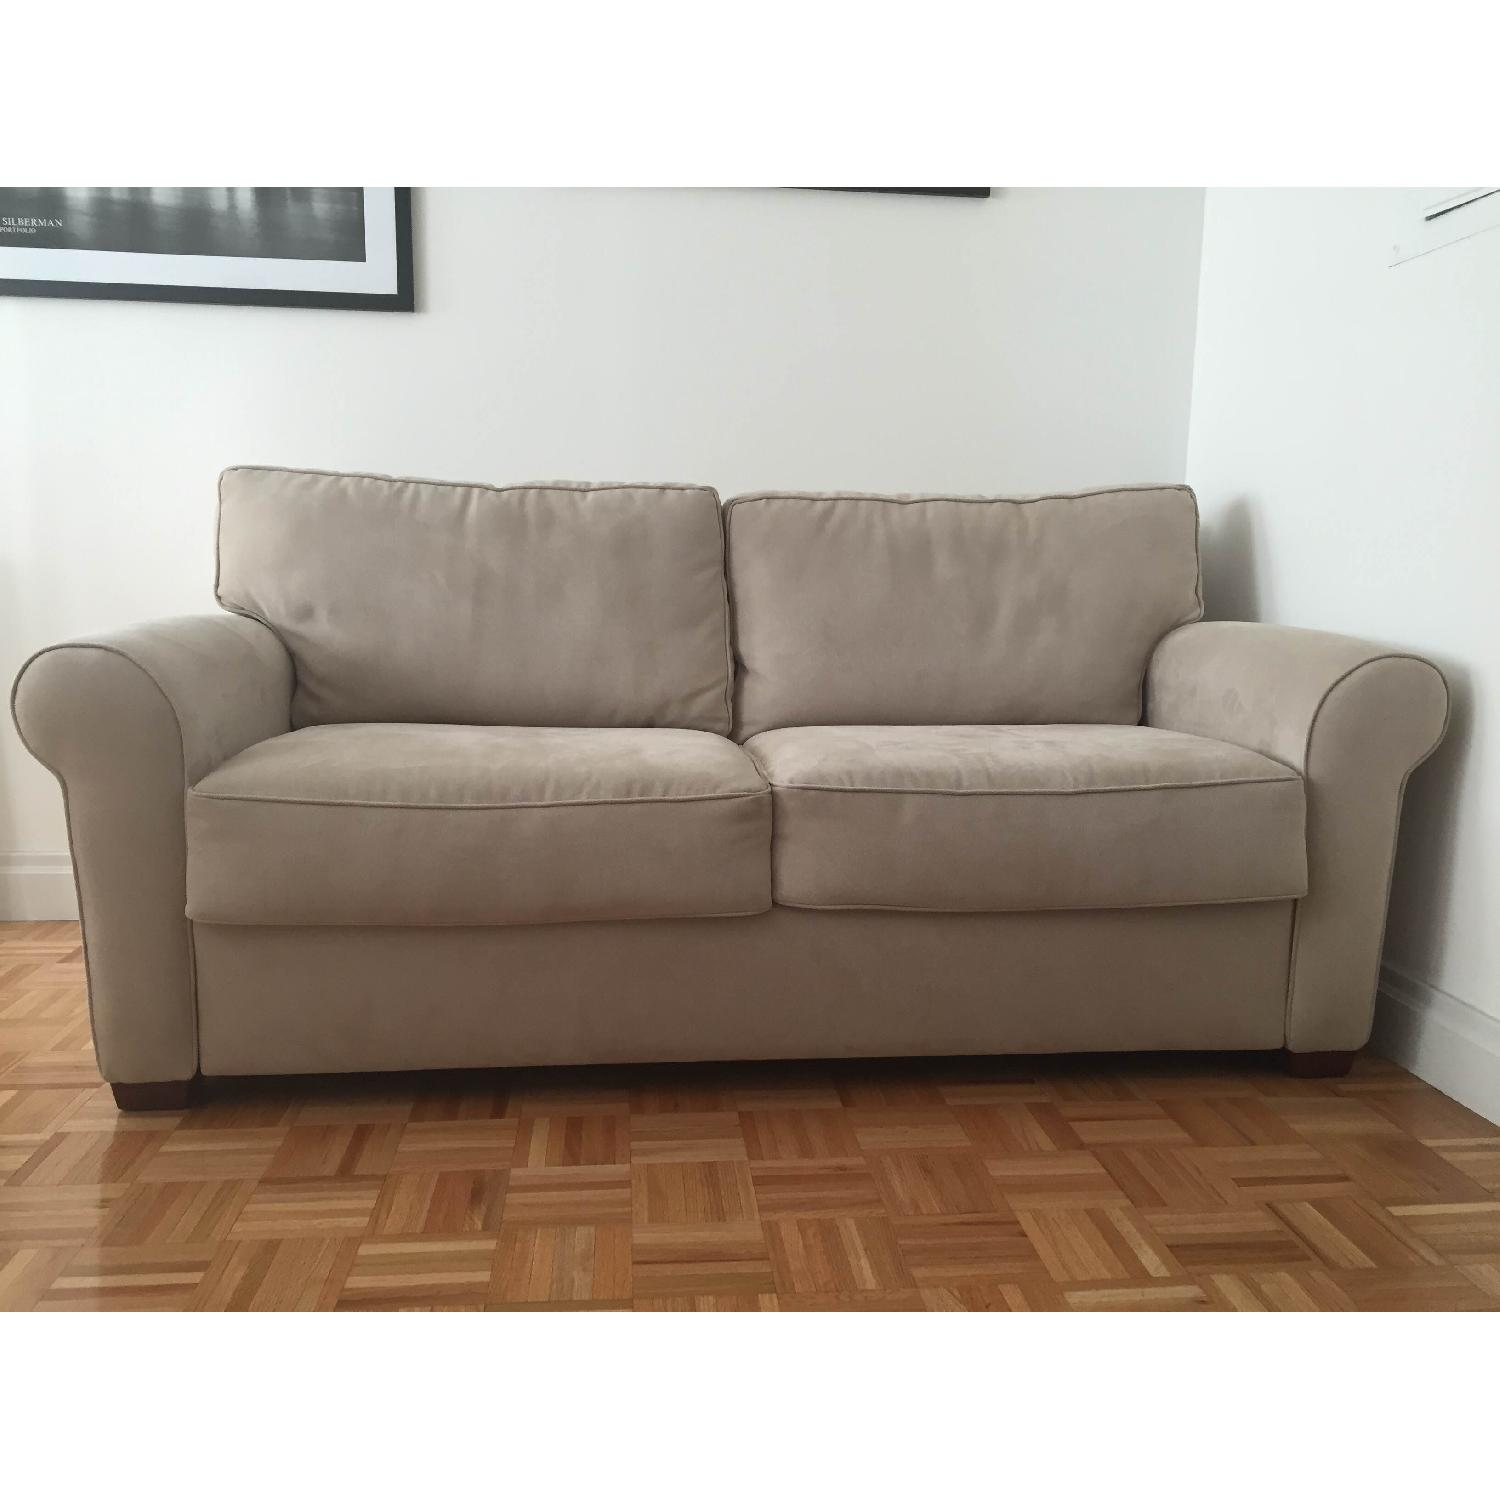 Crate & Barrel Pull Out Couch - image-3